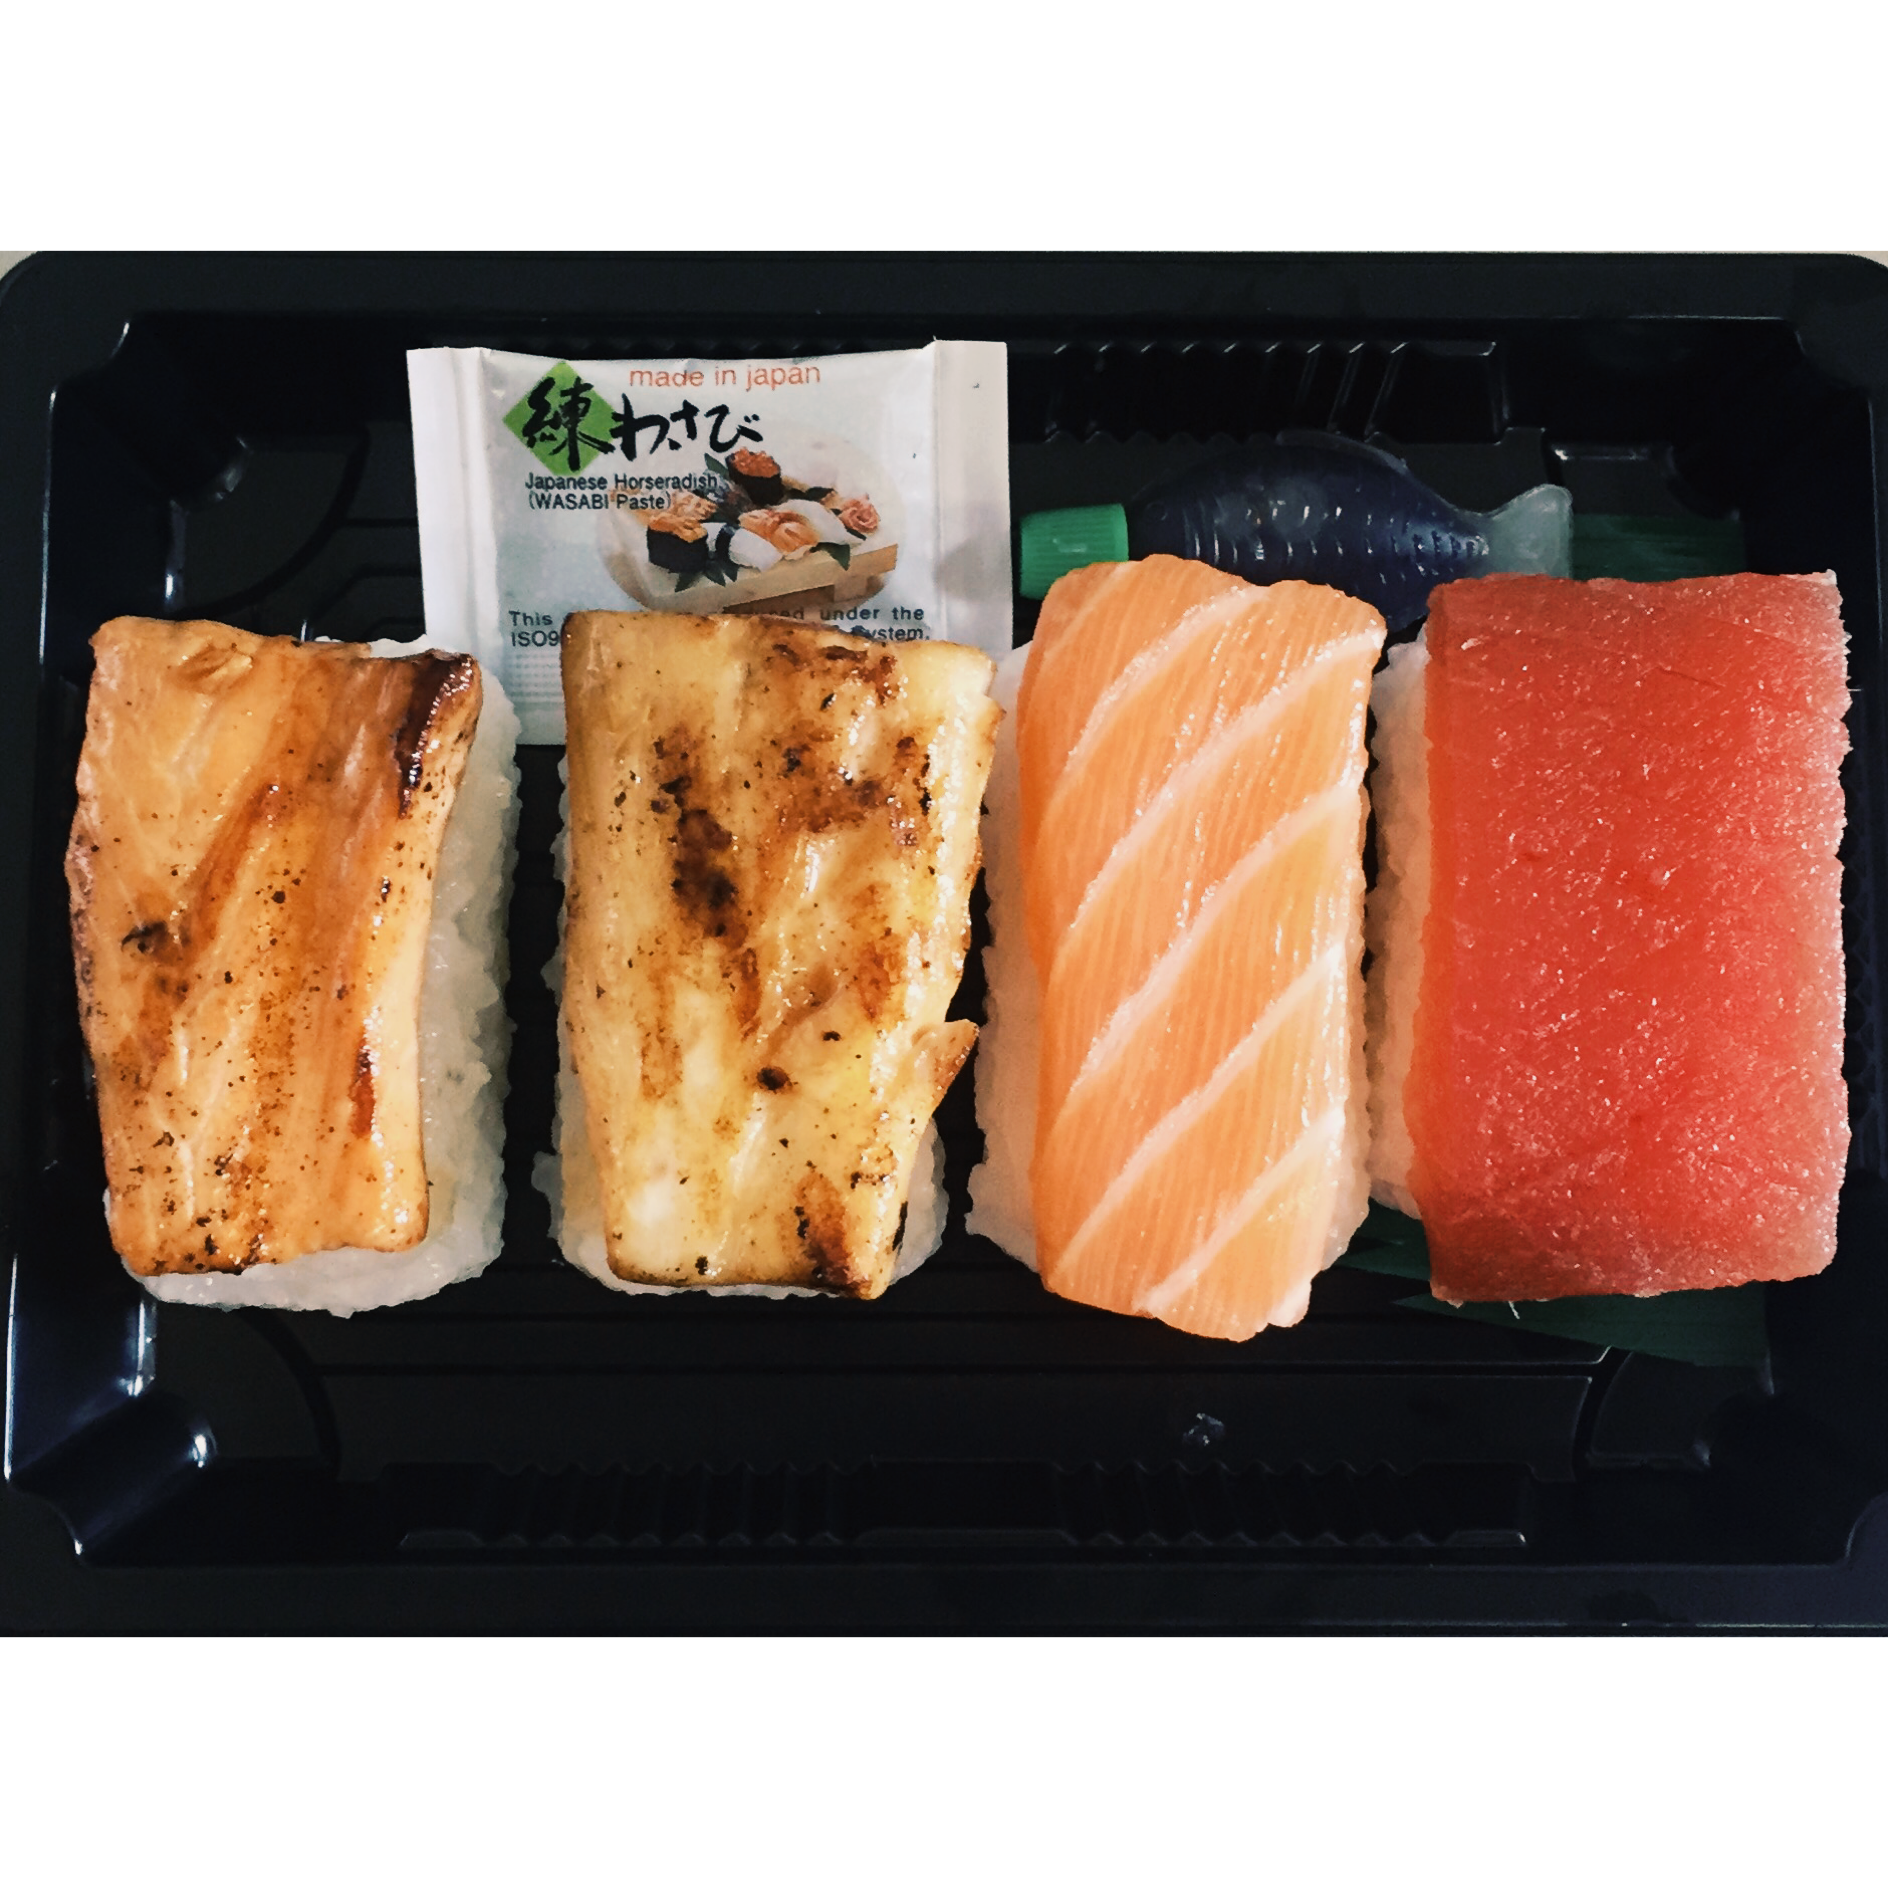 THE MIXED NIGIRI BOX - £6   2 x grilled teriyaki seabass, 2 x grilled teriyaki salmon, 2 x salmon nigiri